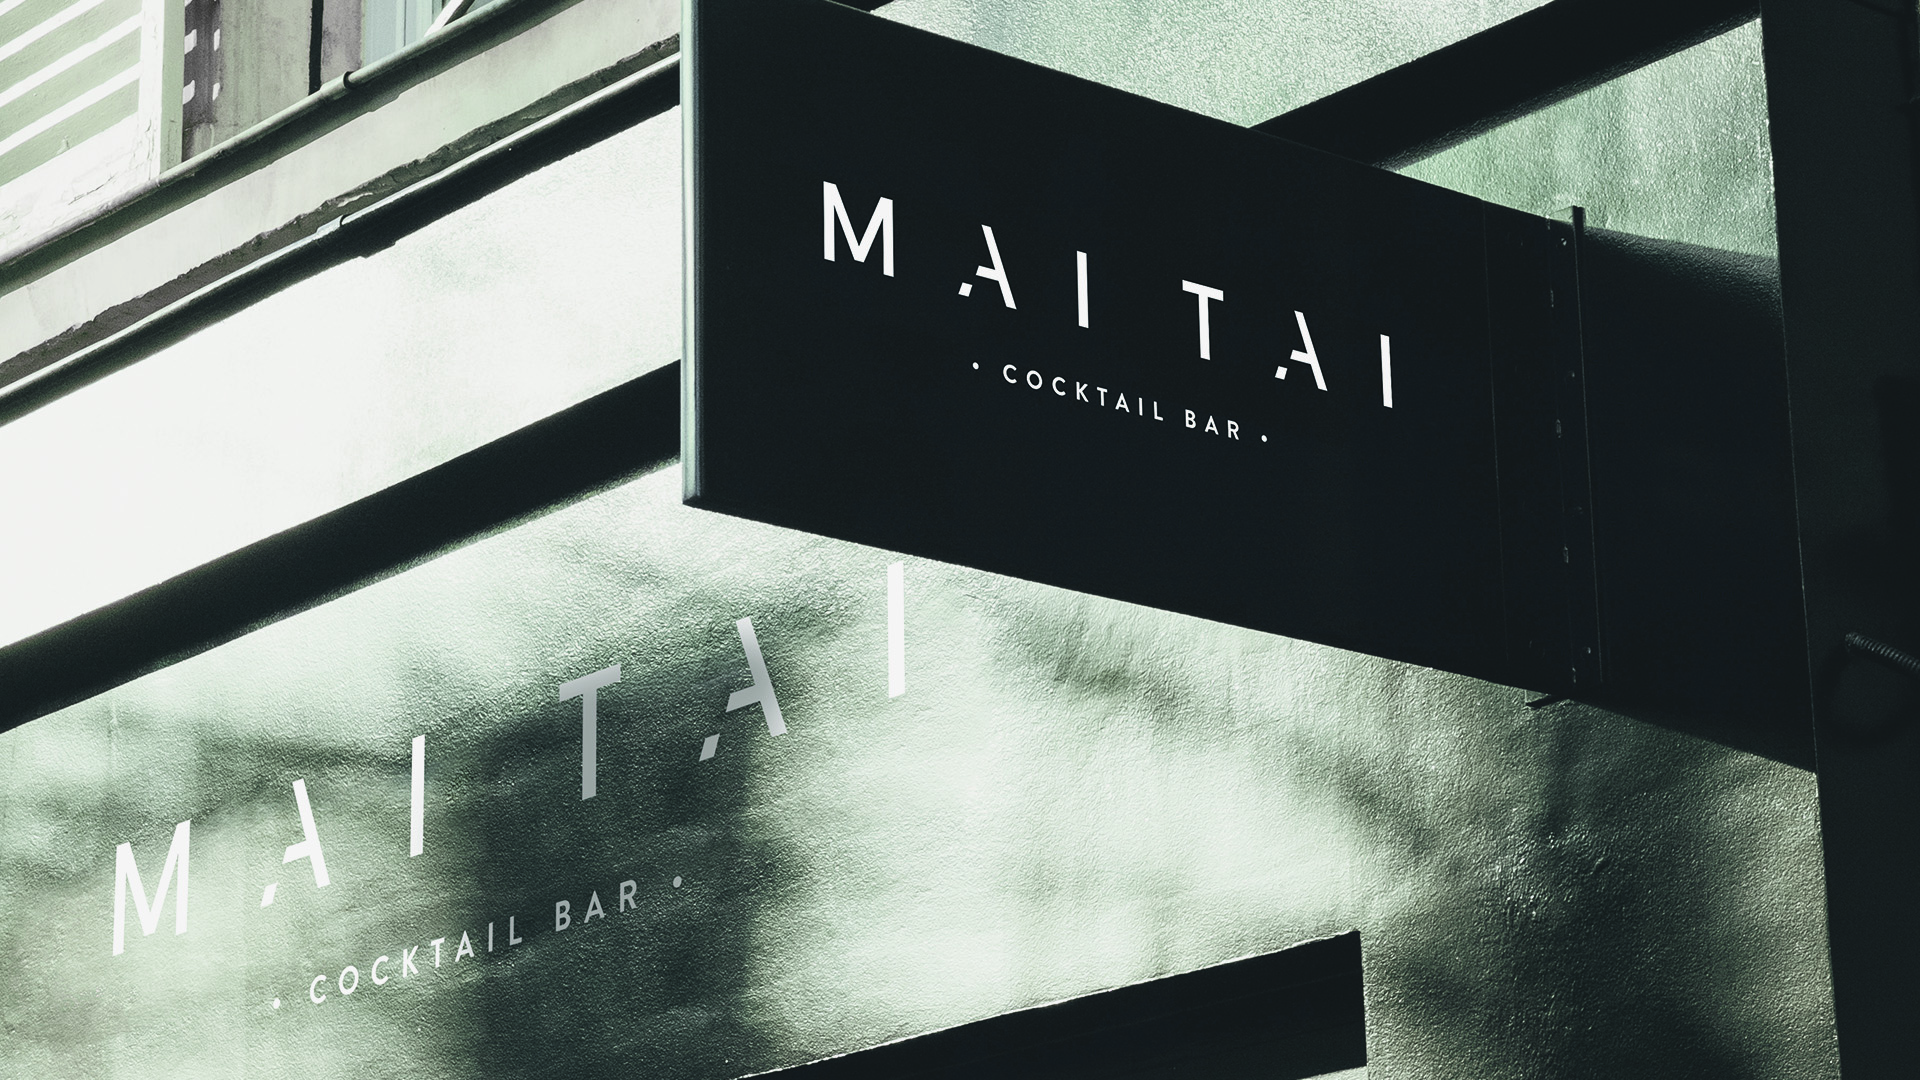 Mai Tai Cocktail Bar | We Are 778 Bournemouth Poole Branding Graphic Design Web Development Creative Agency